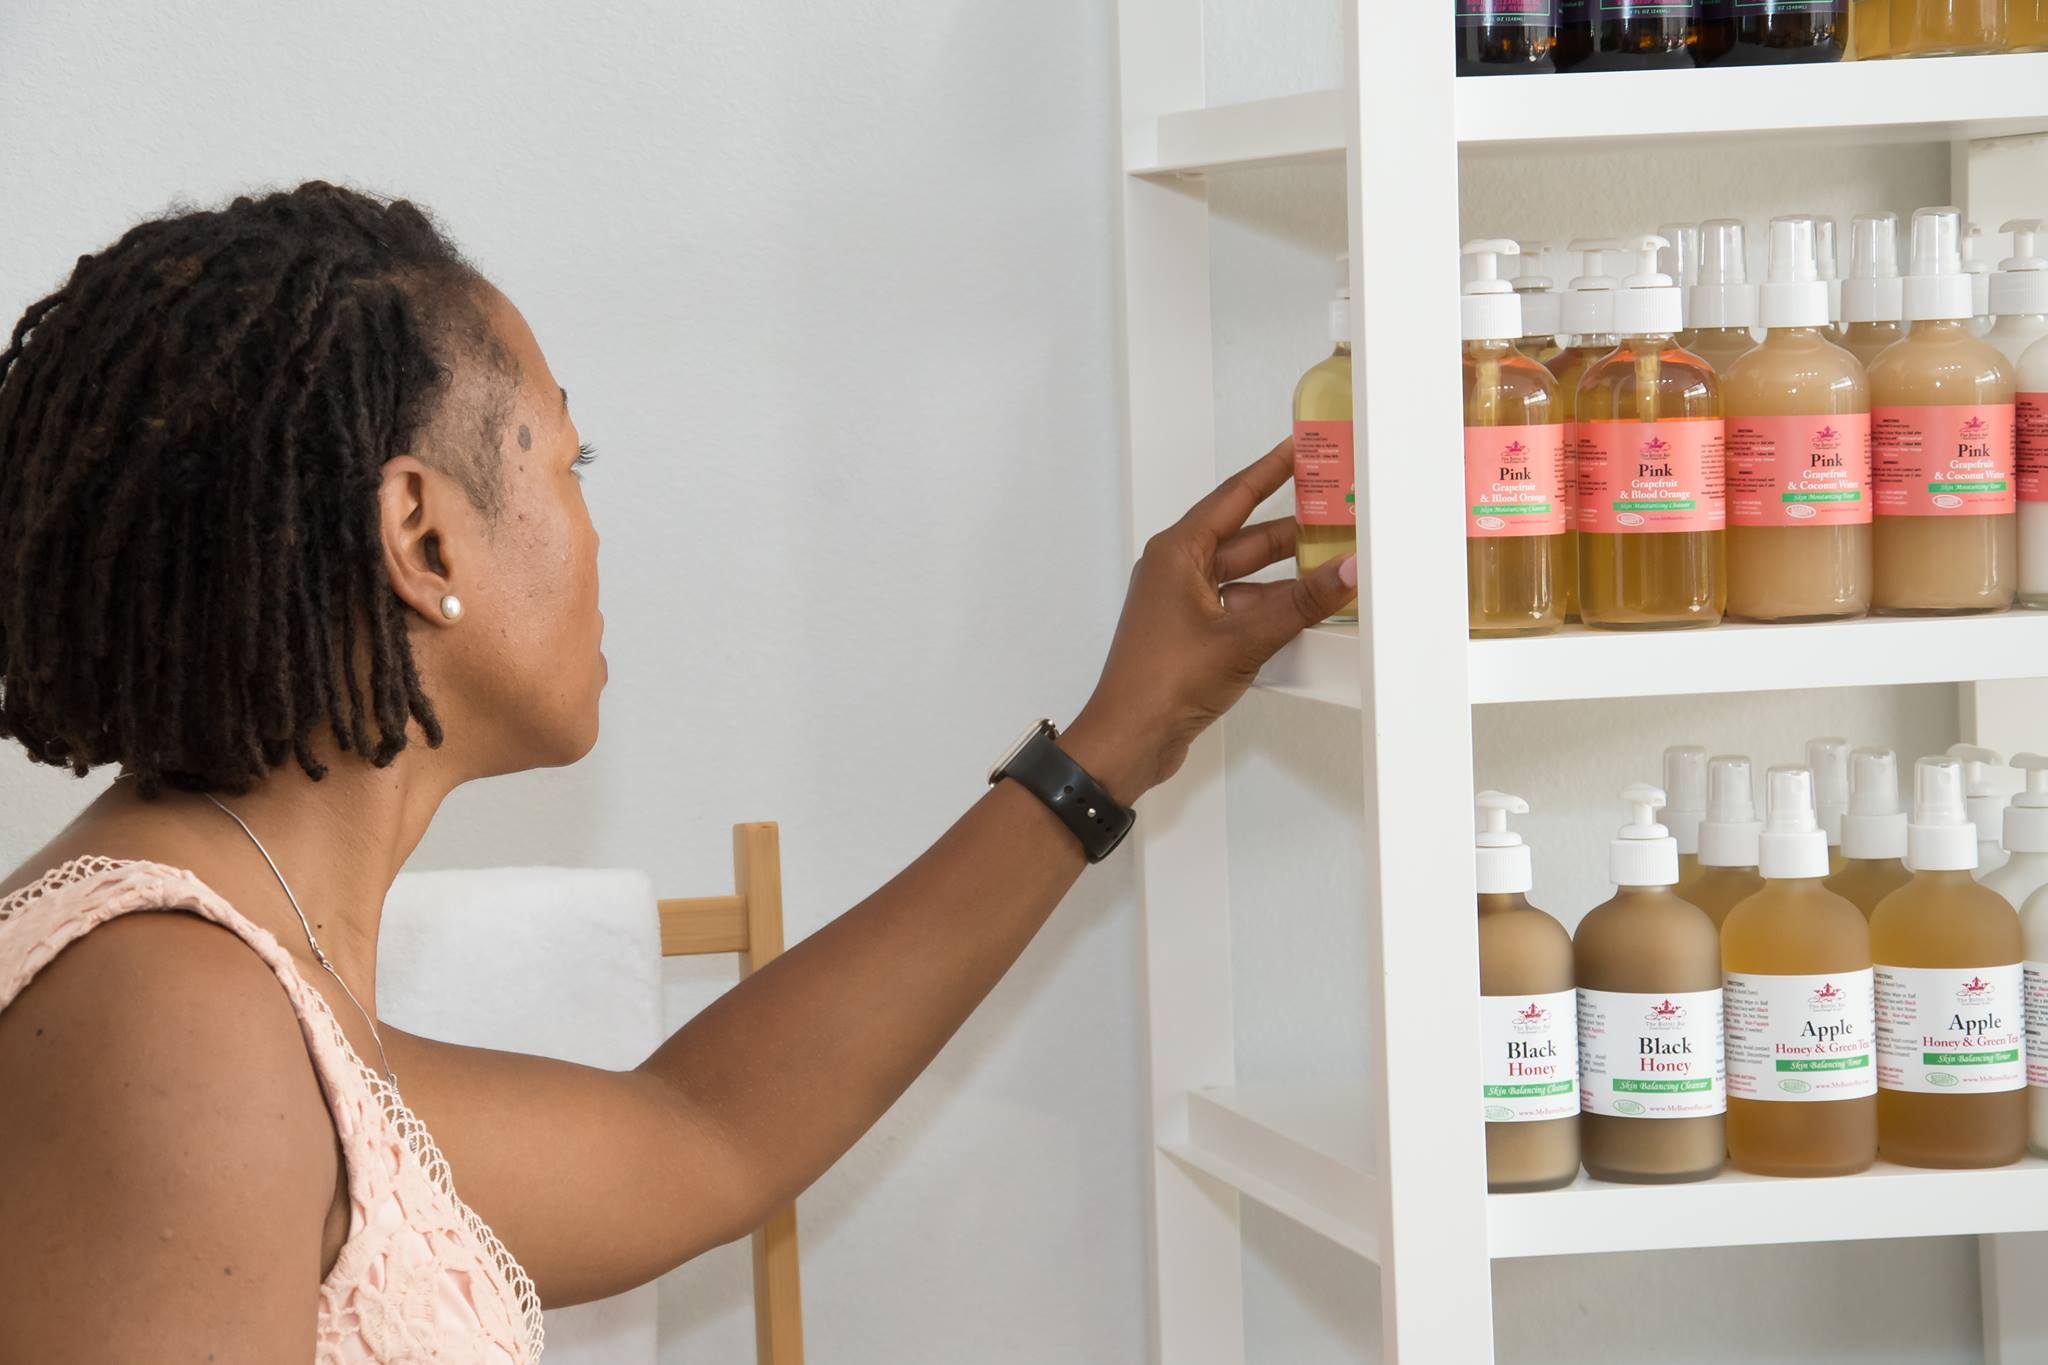 The Butter Bar Skincare – Handmade beauty and Lifestyle brand